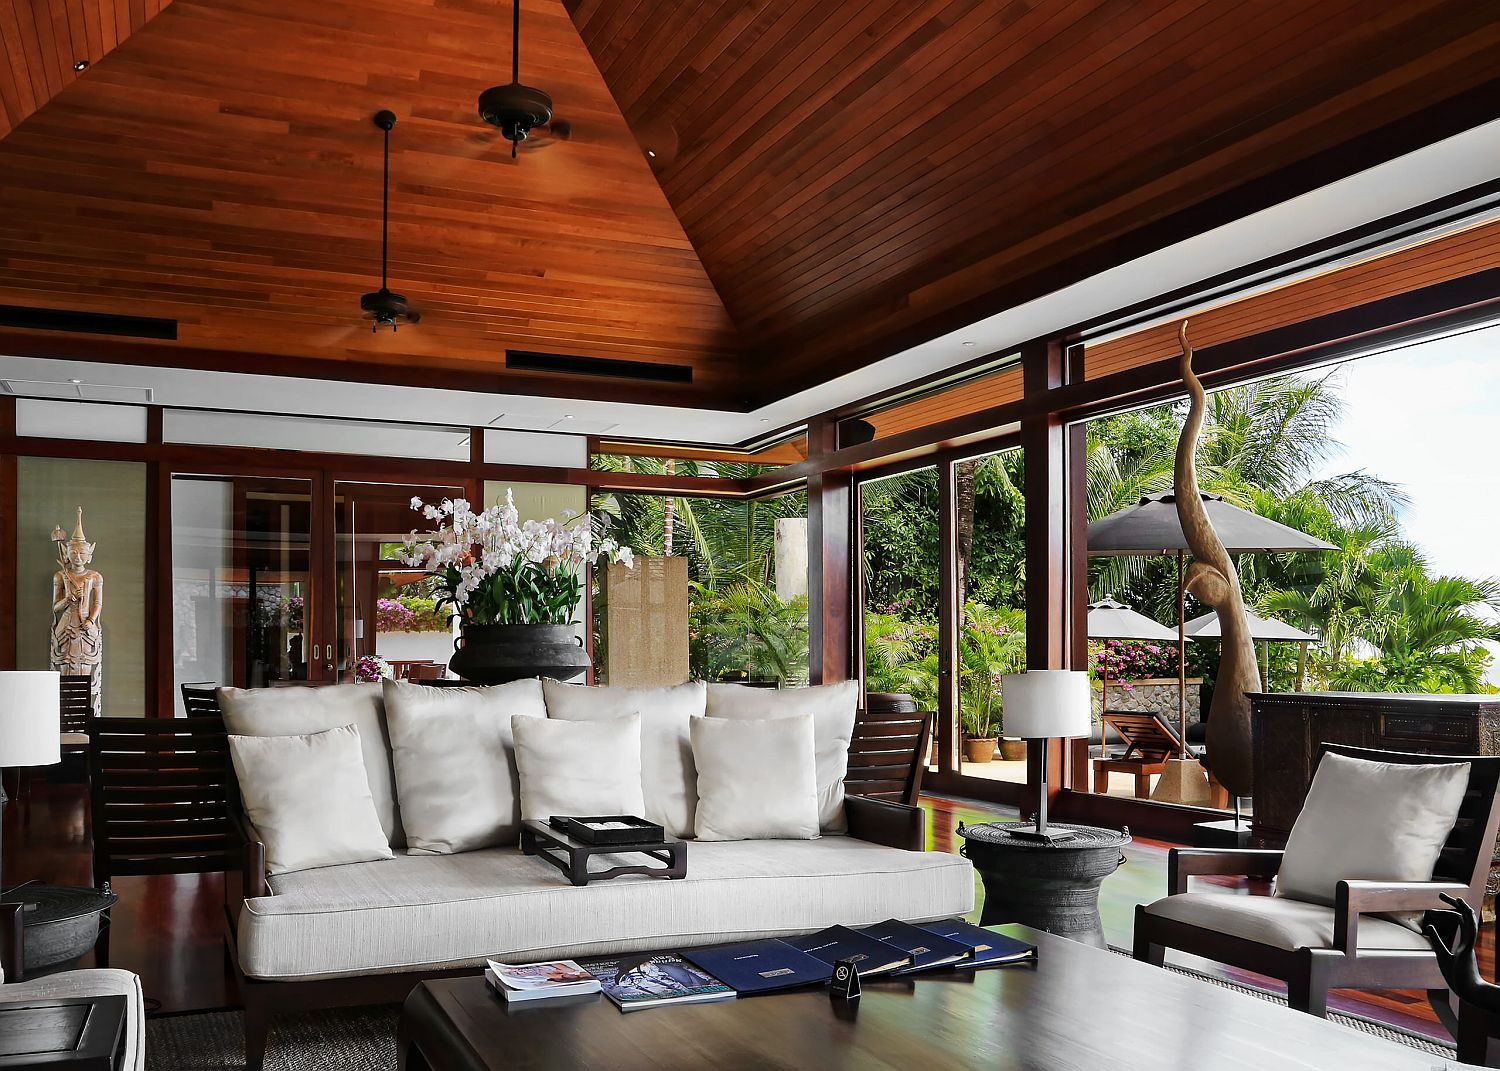 High ceiling in wood aling with ample natural light for the spacious tropical living room